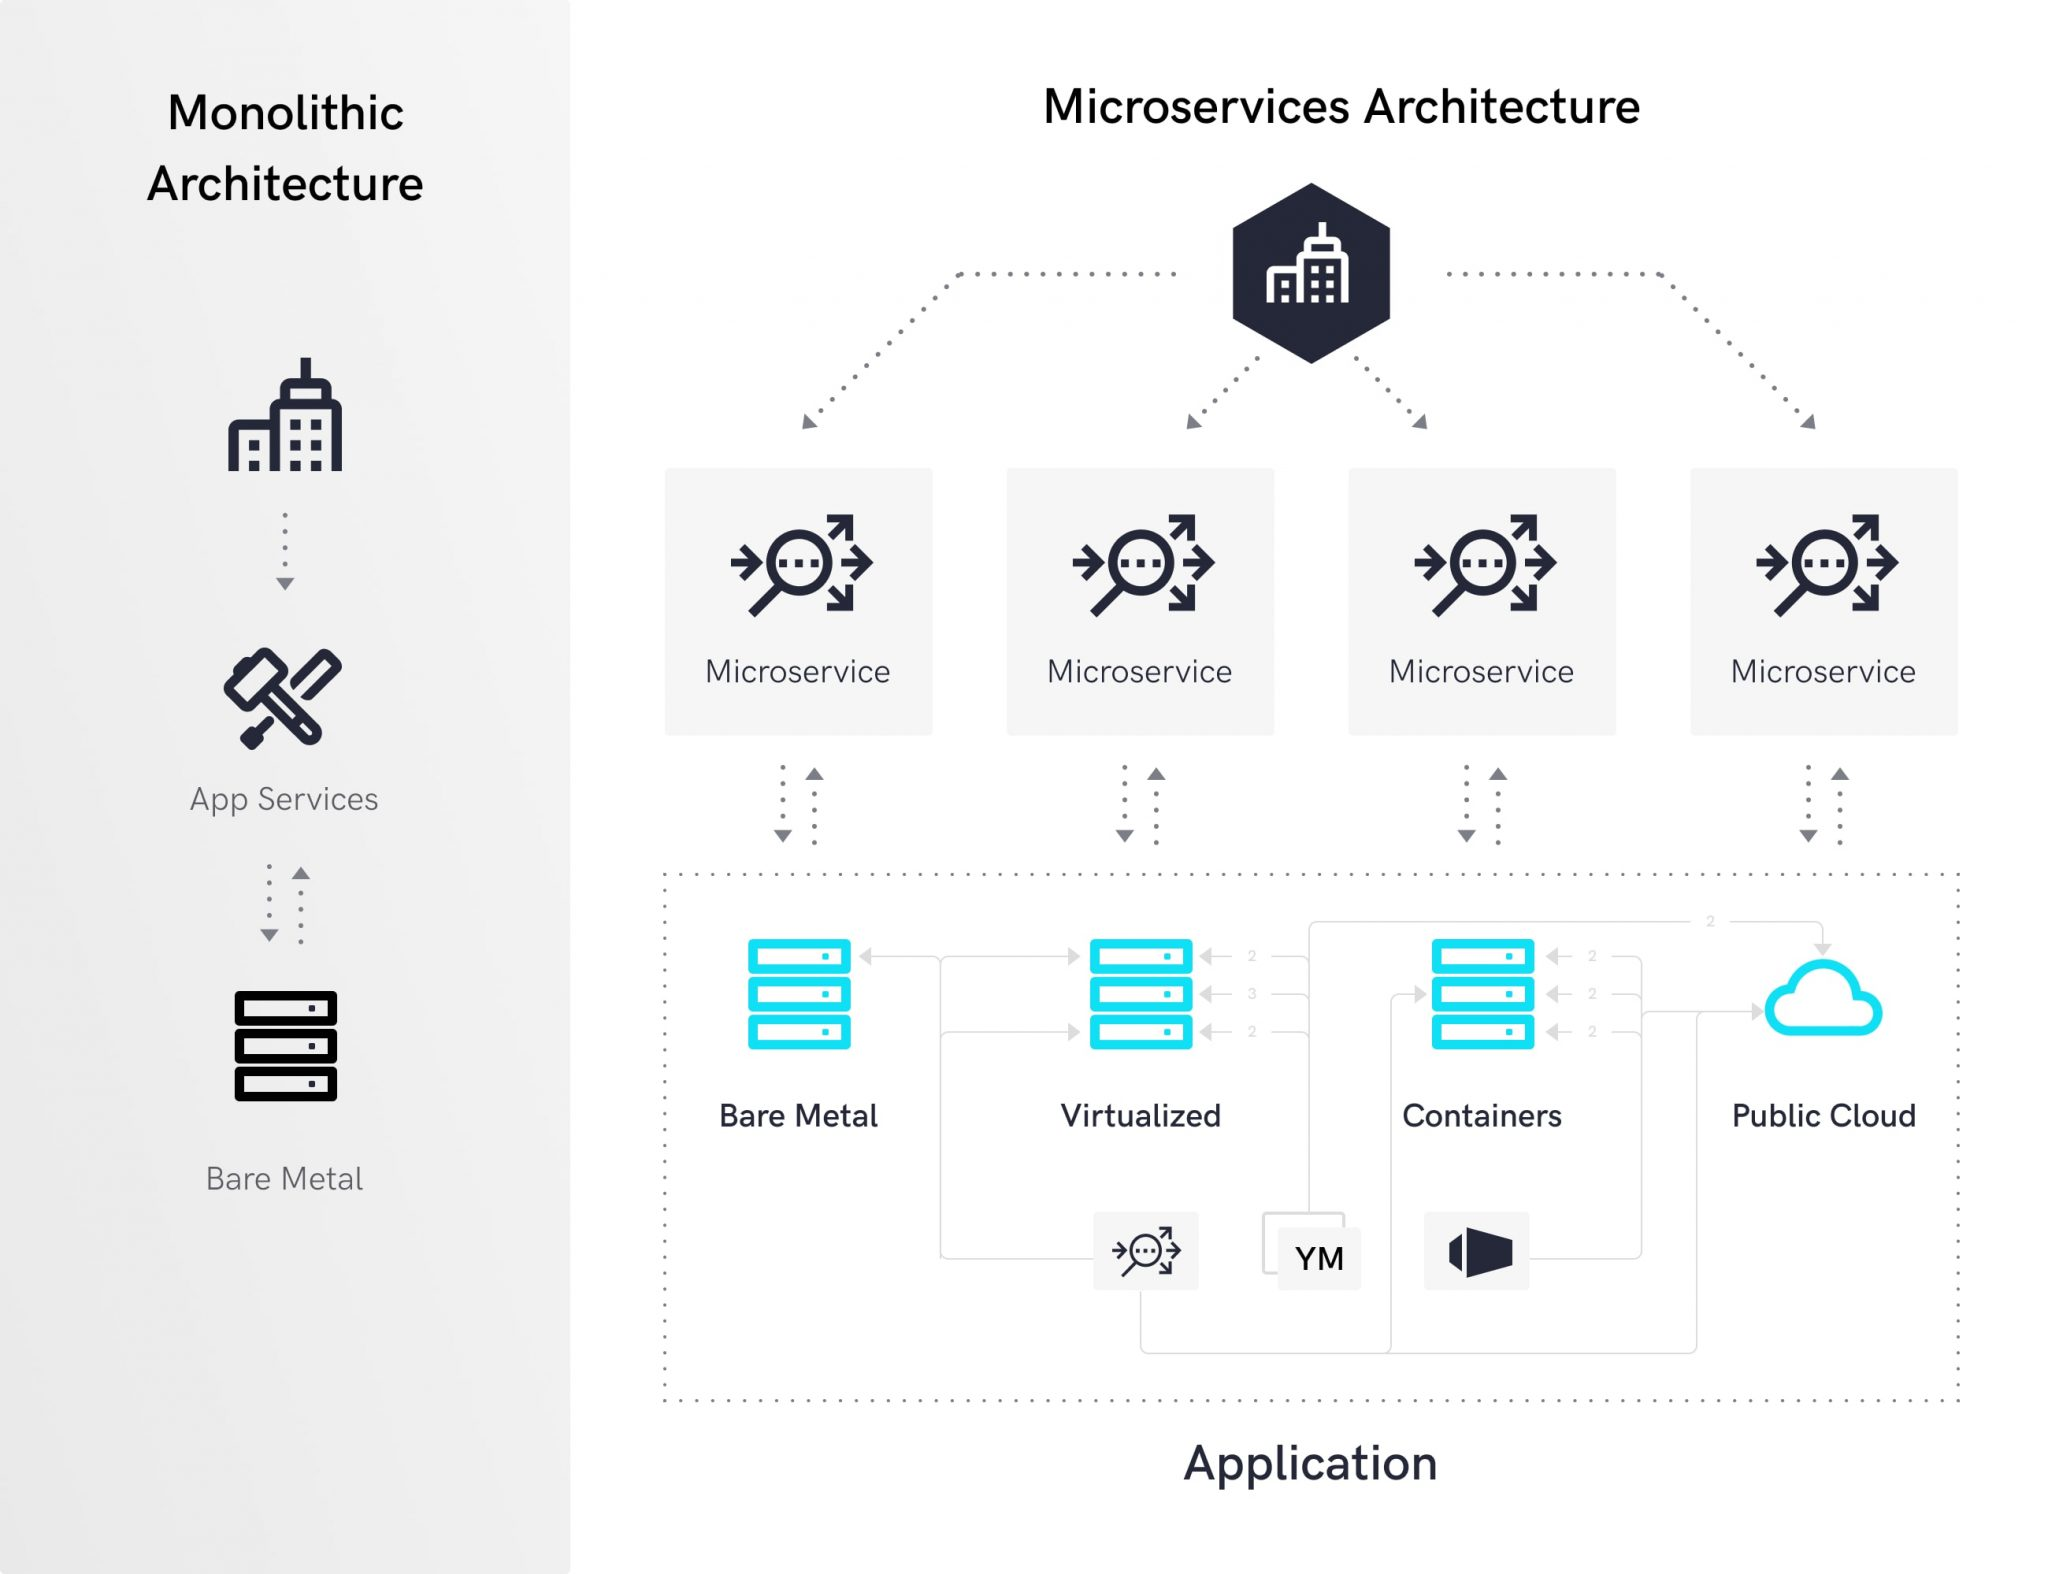 The scheme compares monolithic and microservice architectures